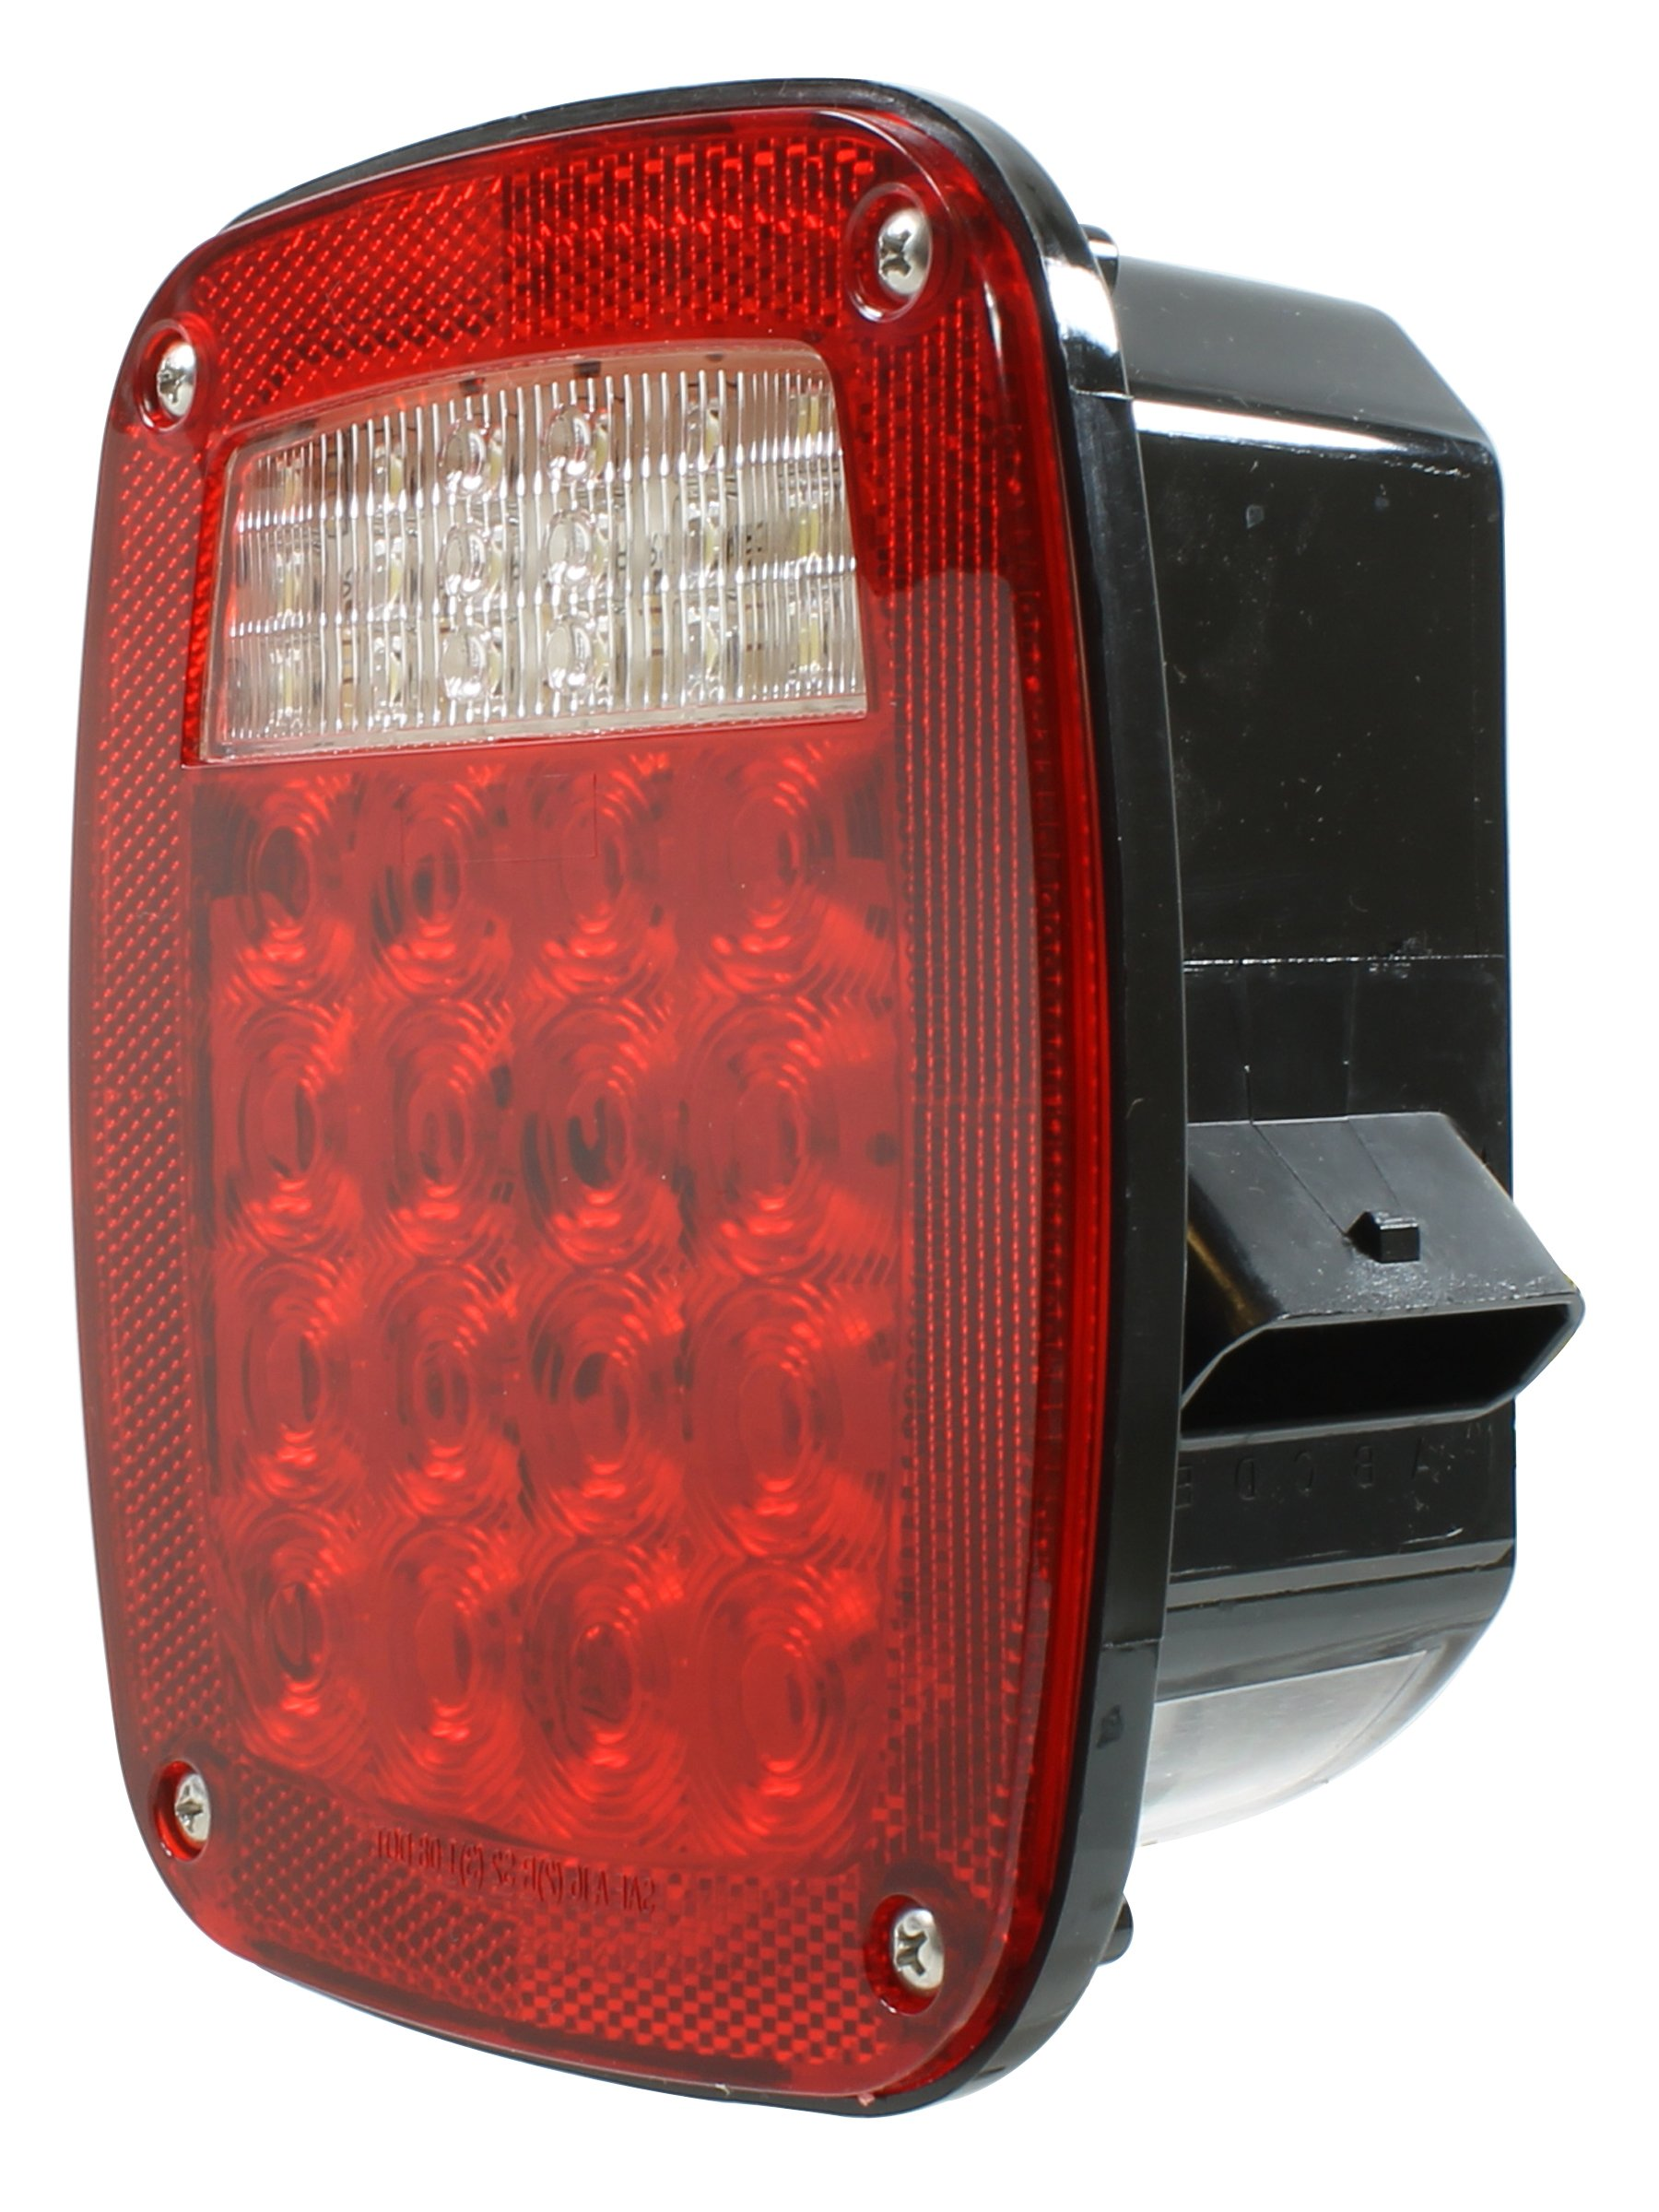 Vehicle Safety Manufacturing 5013LED Red 3-Stud LED Box Lamp with Metri-Pack Connector (Left Hand Mount) by Vehicle Safety Manufacturing